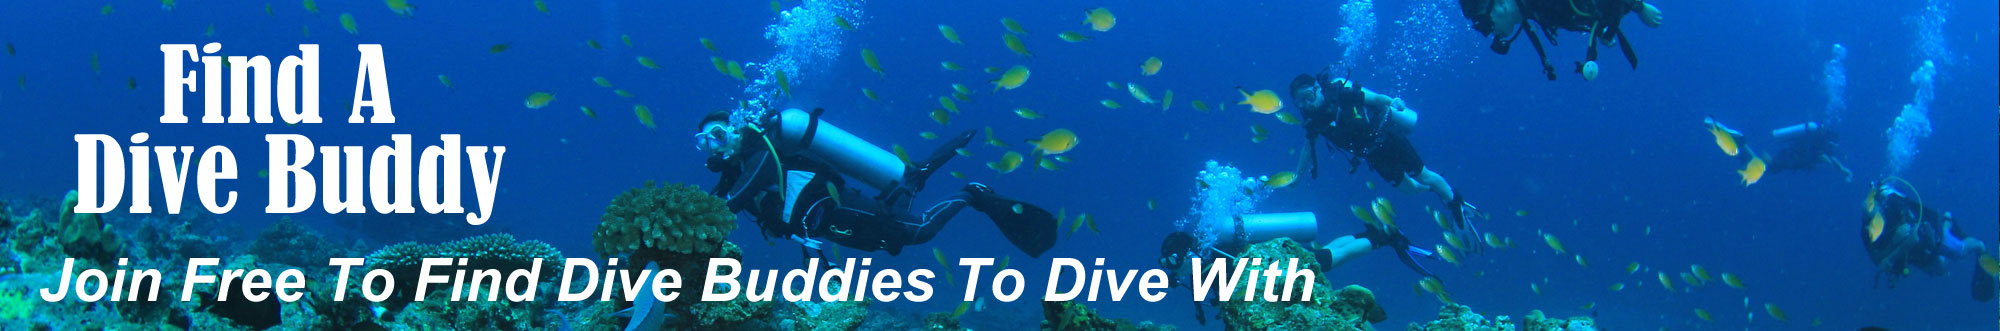 Find A Dive Buddy